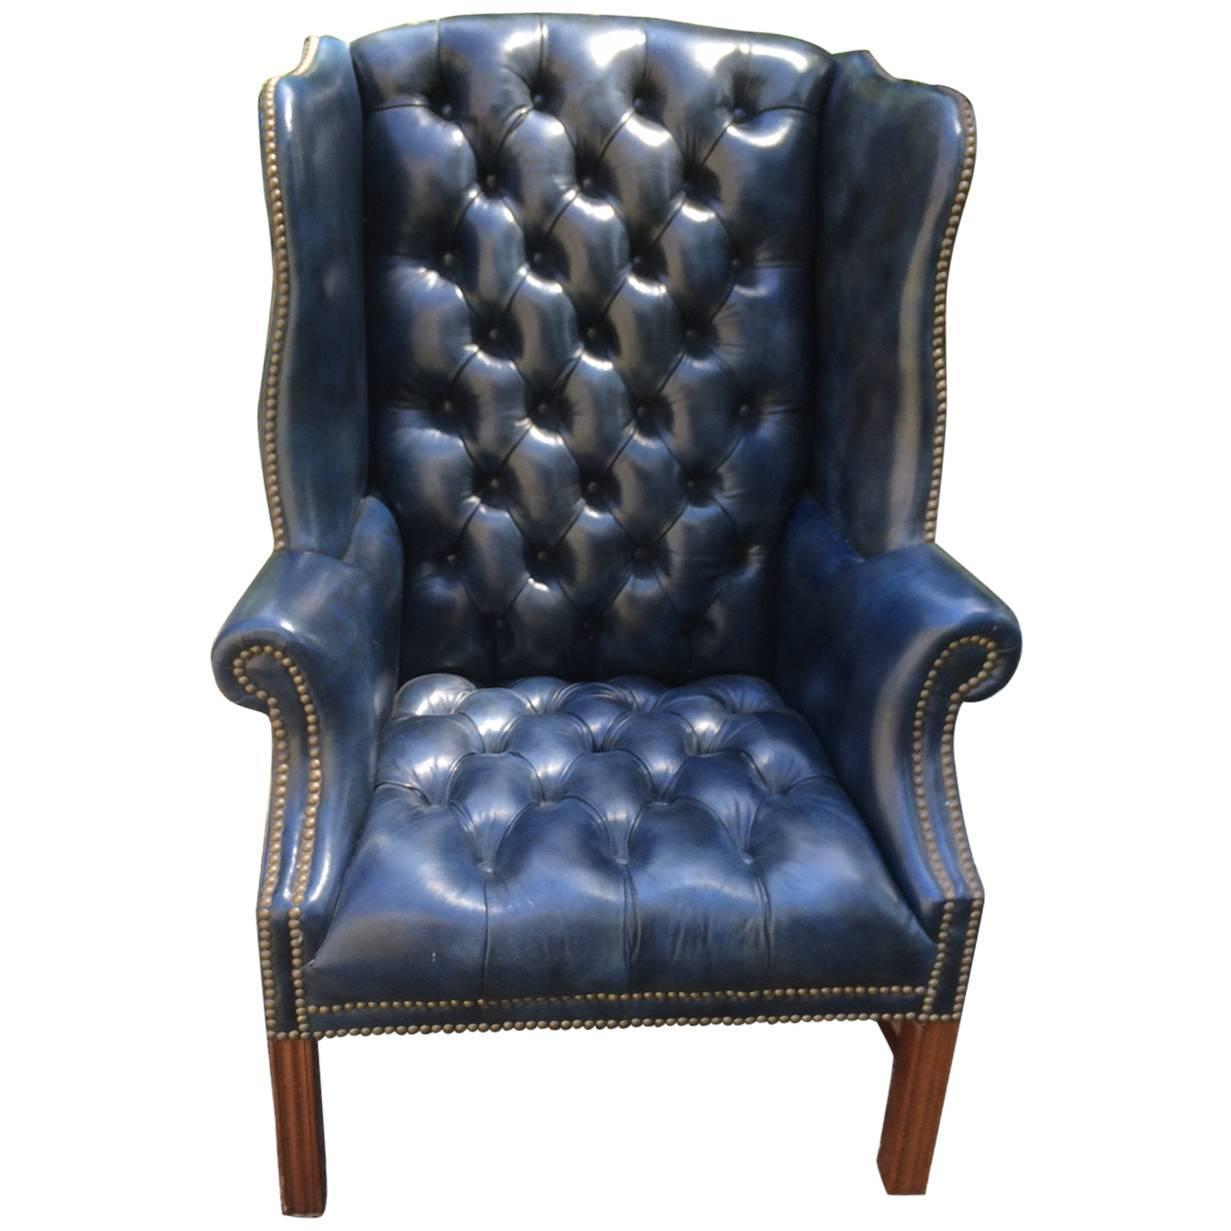 Tufted Leather Chair Fabulous Navy Blue Leather Tufted Wing Chair For Sale At